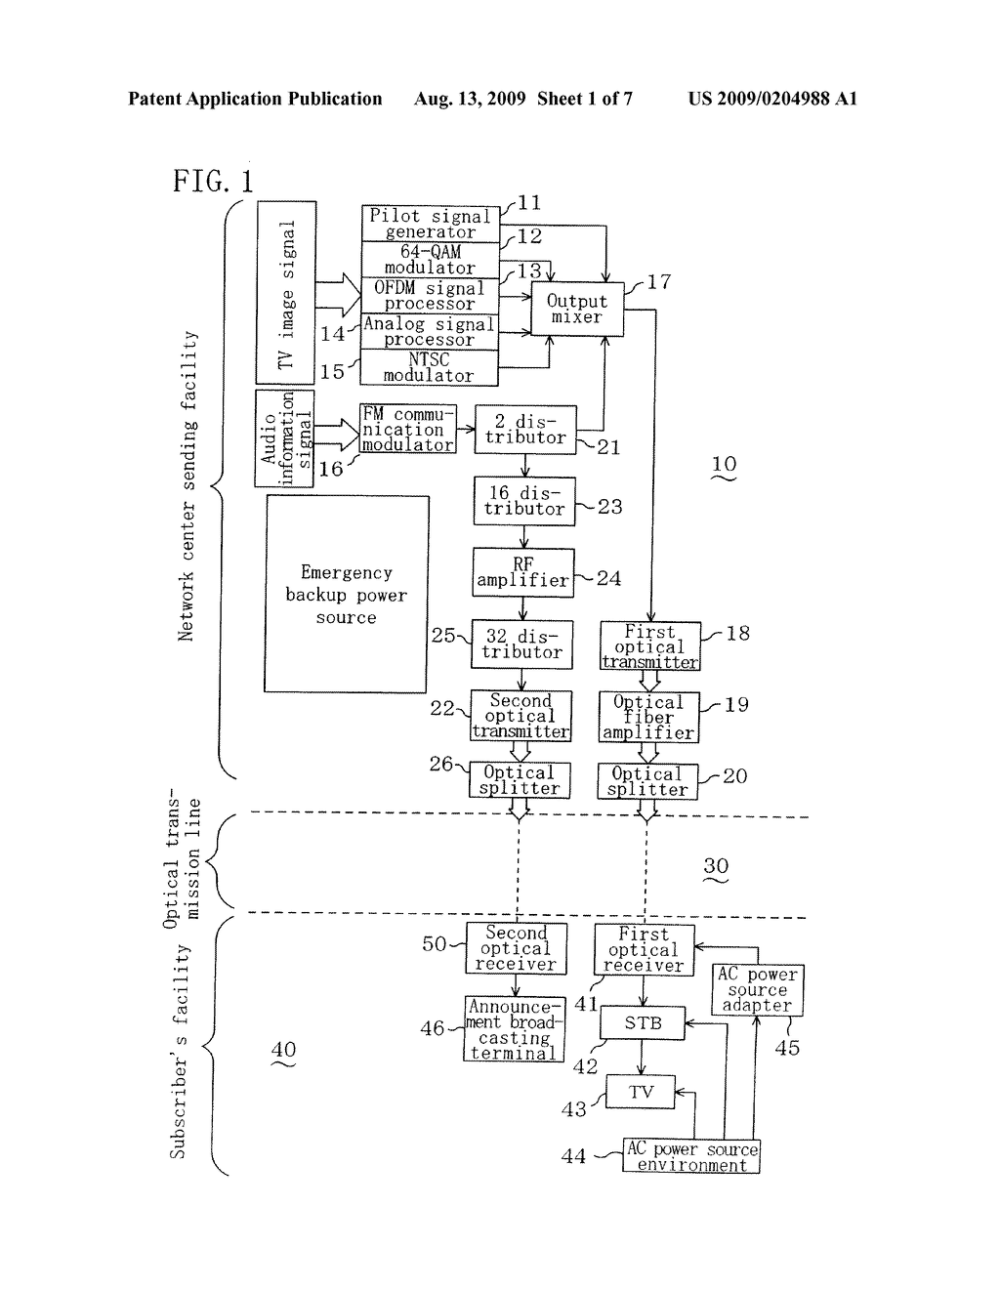 medium resolution of announcement broadcasting system announcement broadcasting optical receiver used for the announcement broadcasting system cable television broadcasting